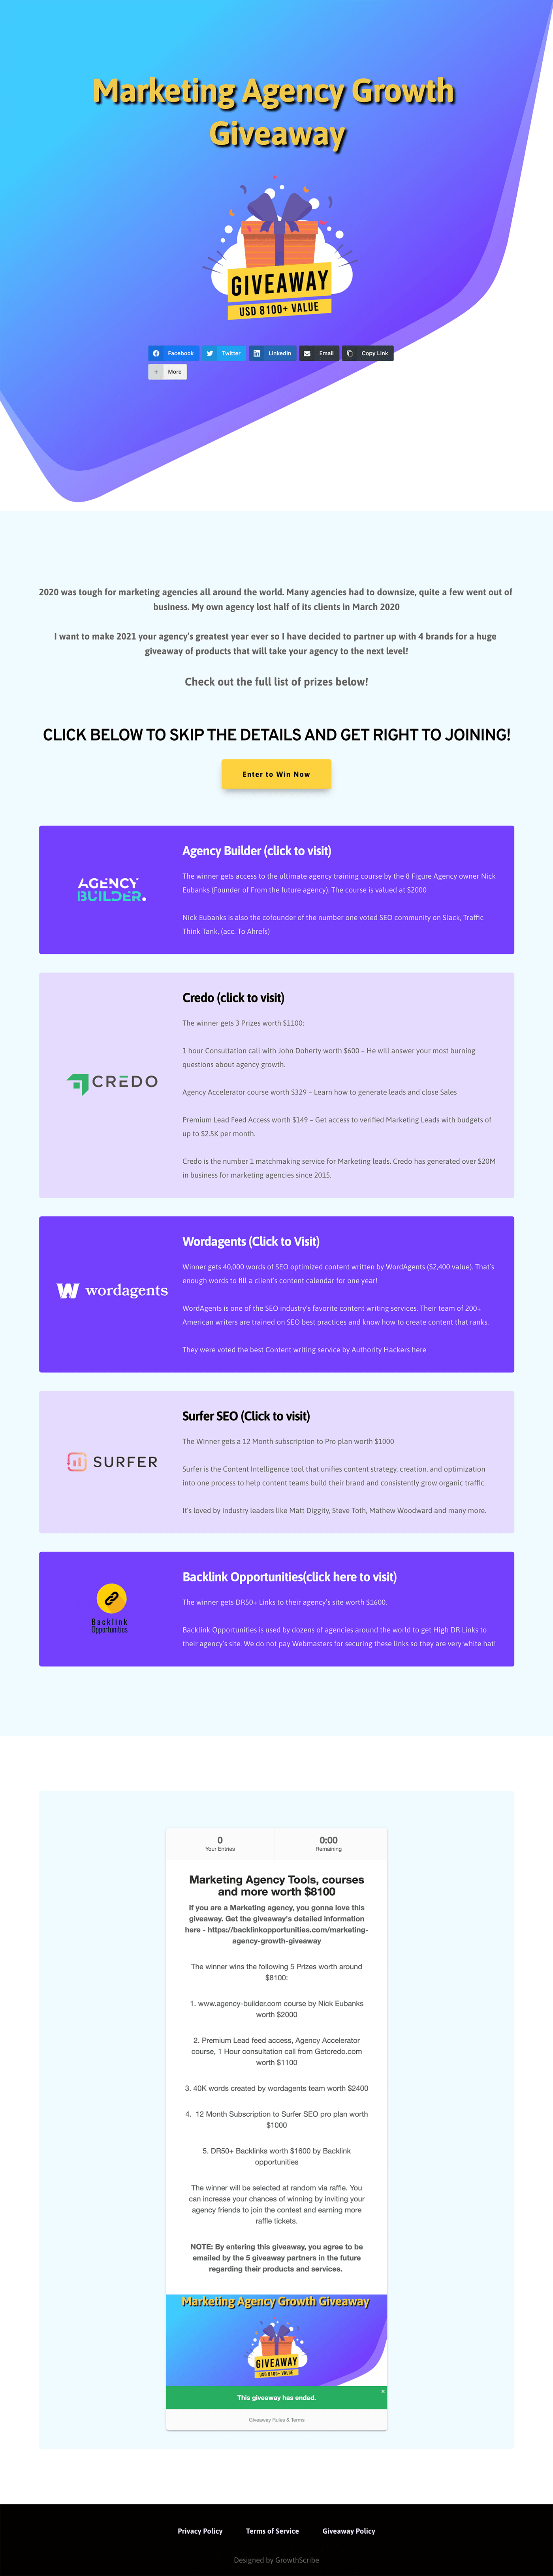 Marketing Agency Growth Giveaway Page Example